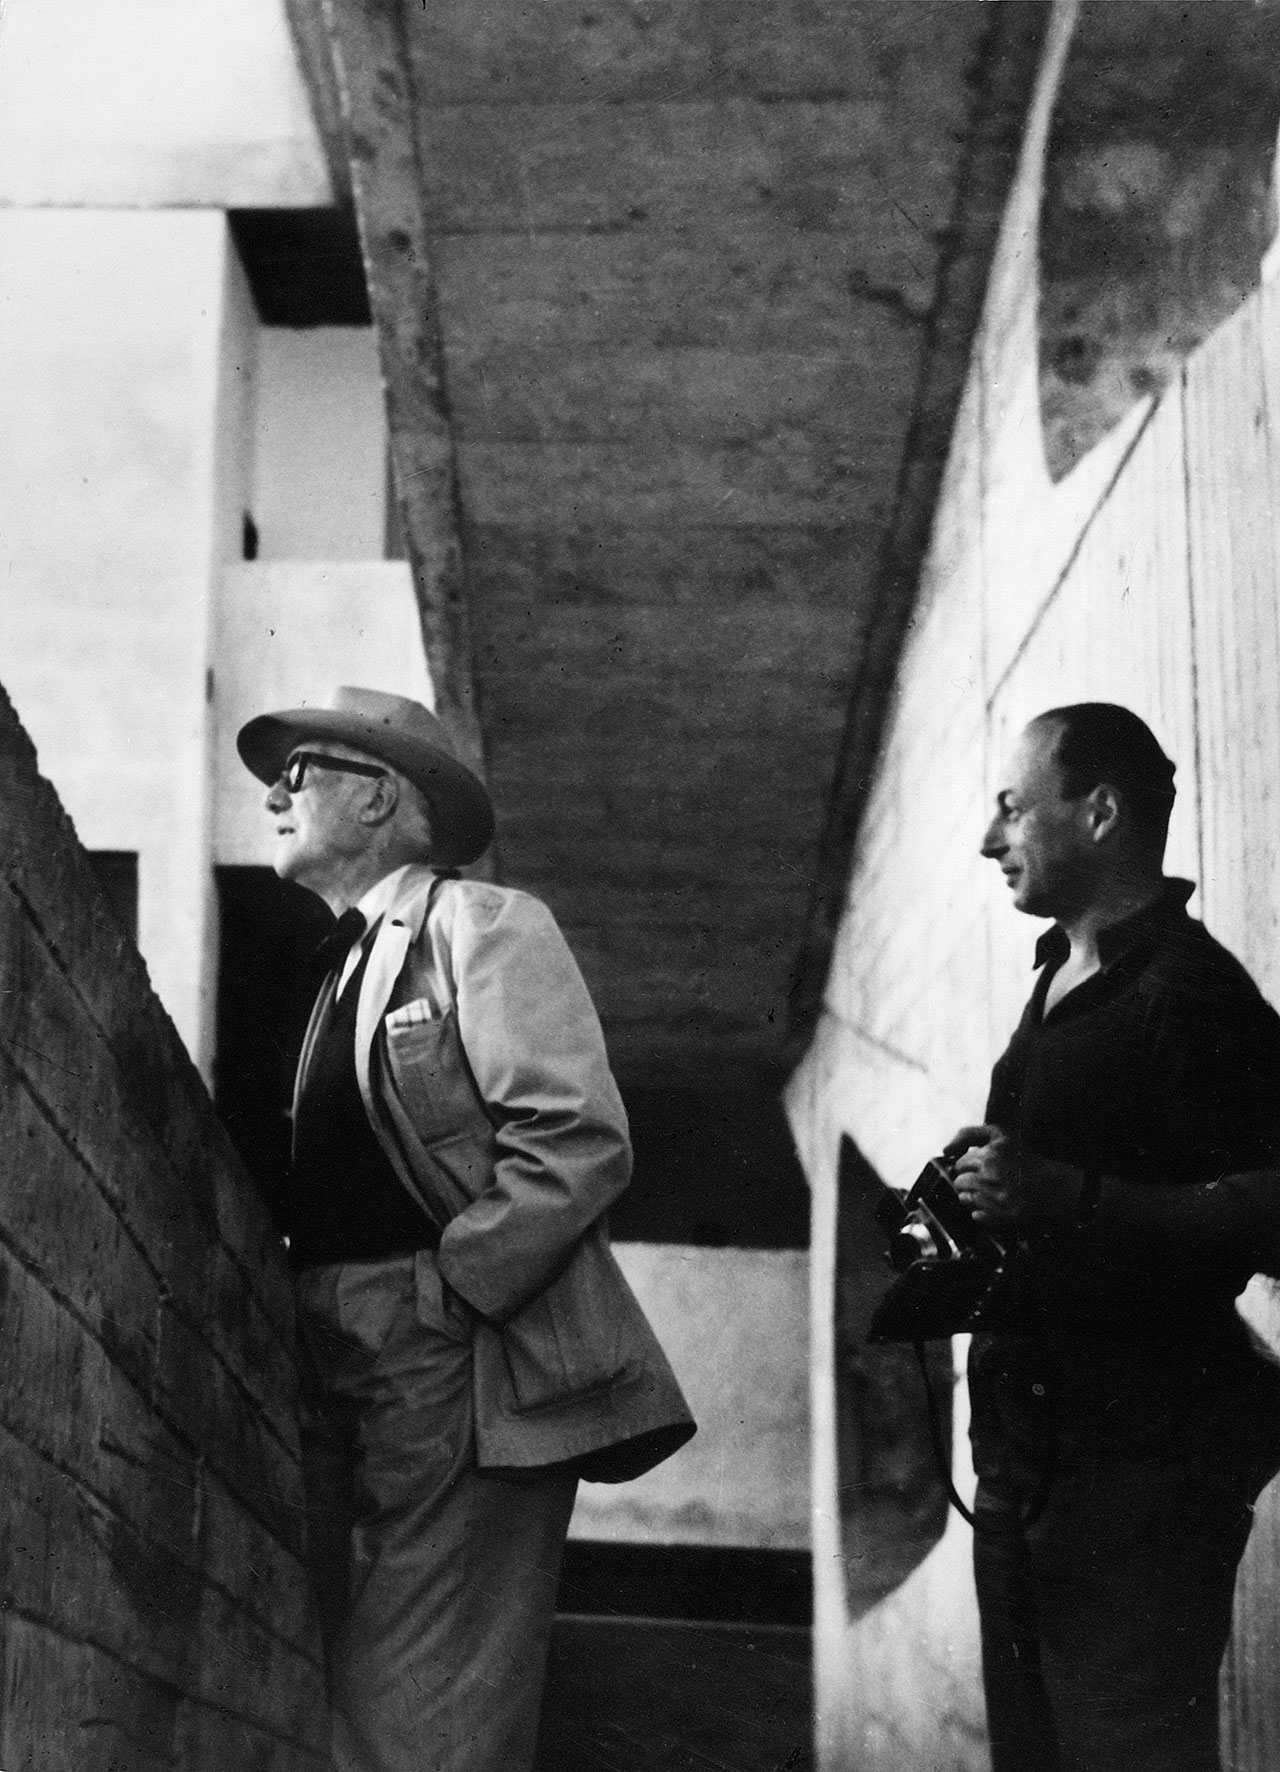 Le Corbusier and Lucien Hervé at the High Court, Chandigarh, India, 1955. (photographer unknown).Courtesy of Galerie du Jour agnès b., Paris.